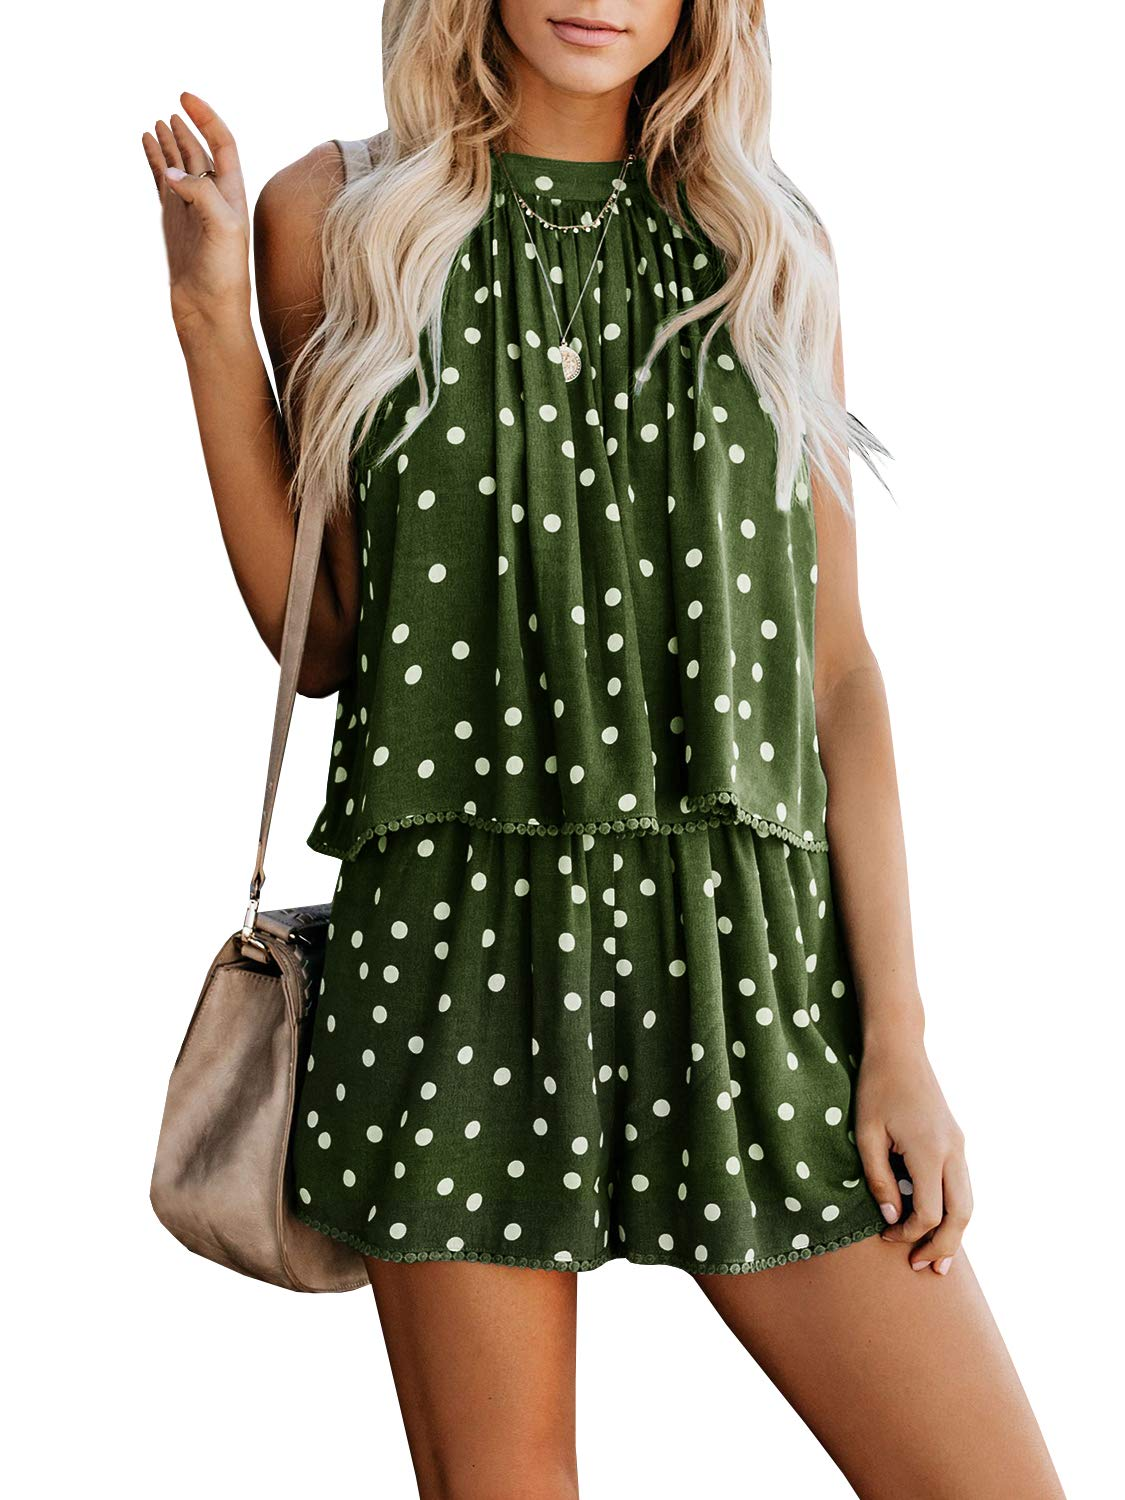 Gemijack Womens Casual Halter Romper Ploka Dot Lace Trim Outfit Crop Sleeveless Flare Jumpsuit Playsuit